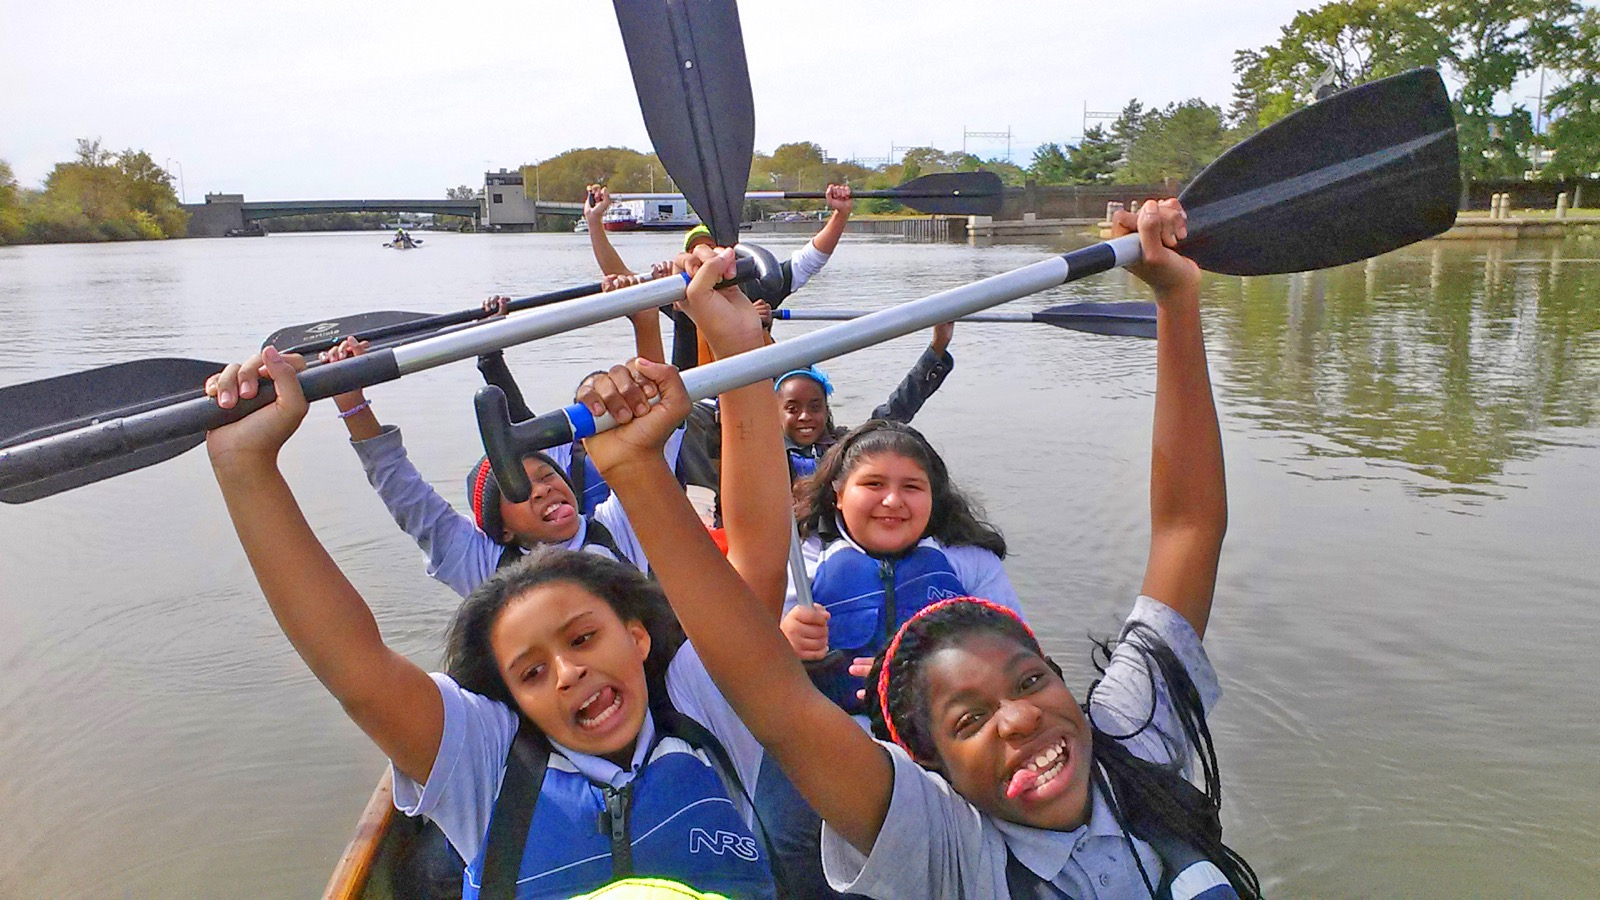 a group photo of participants in their canoe holding the paddles above their heads